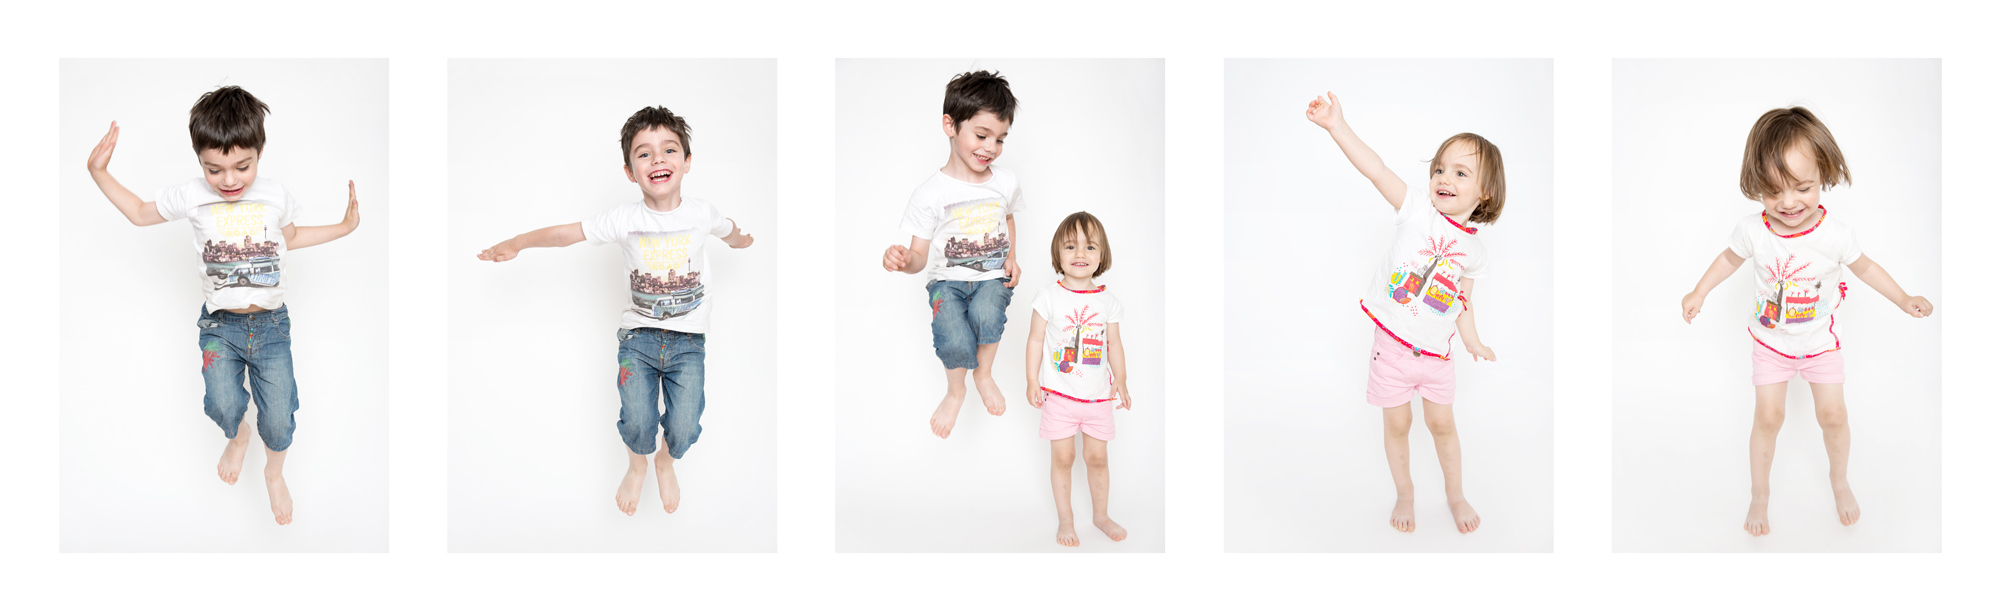 Montage photo d'une séance en studio photo d'enfants sautant